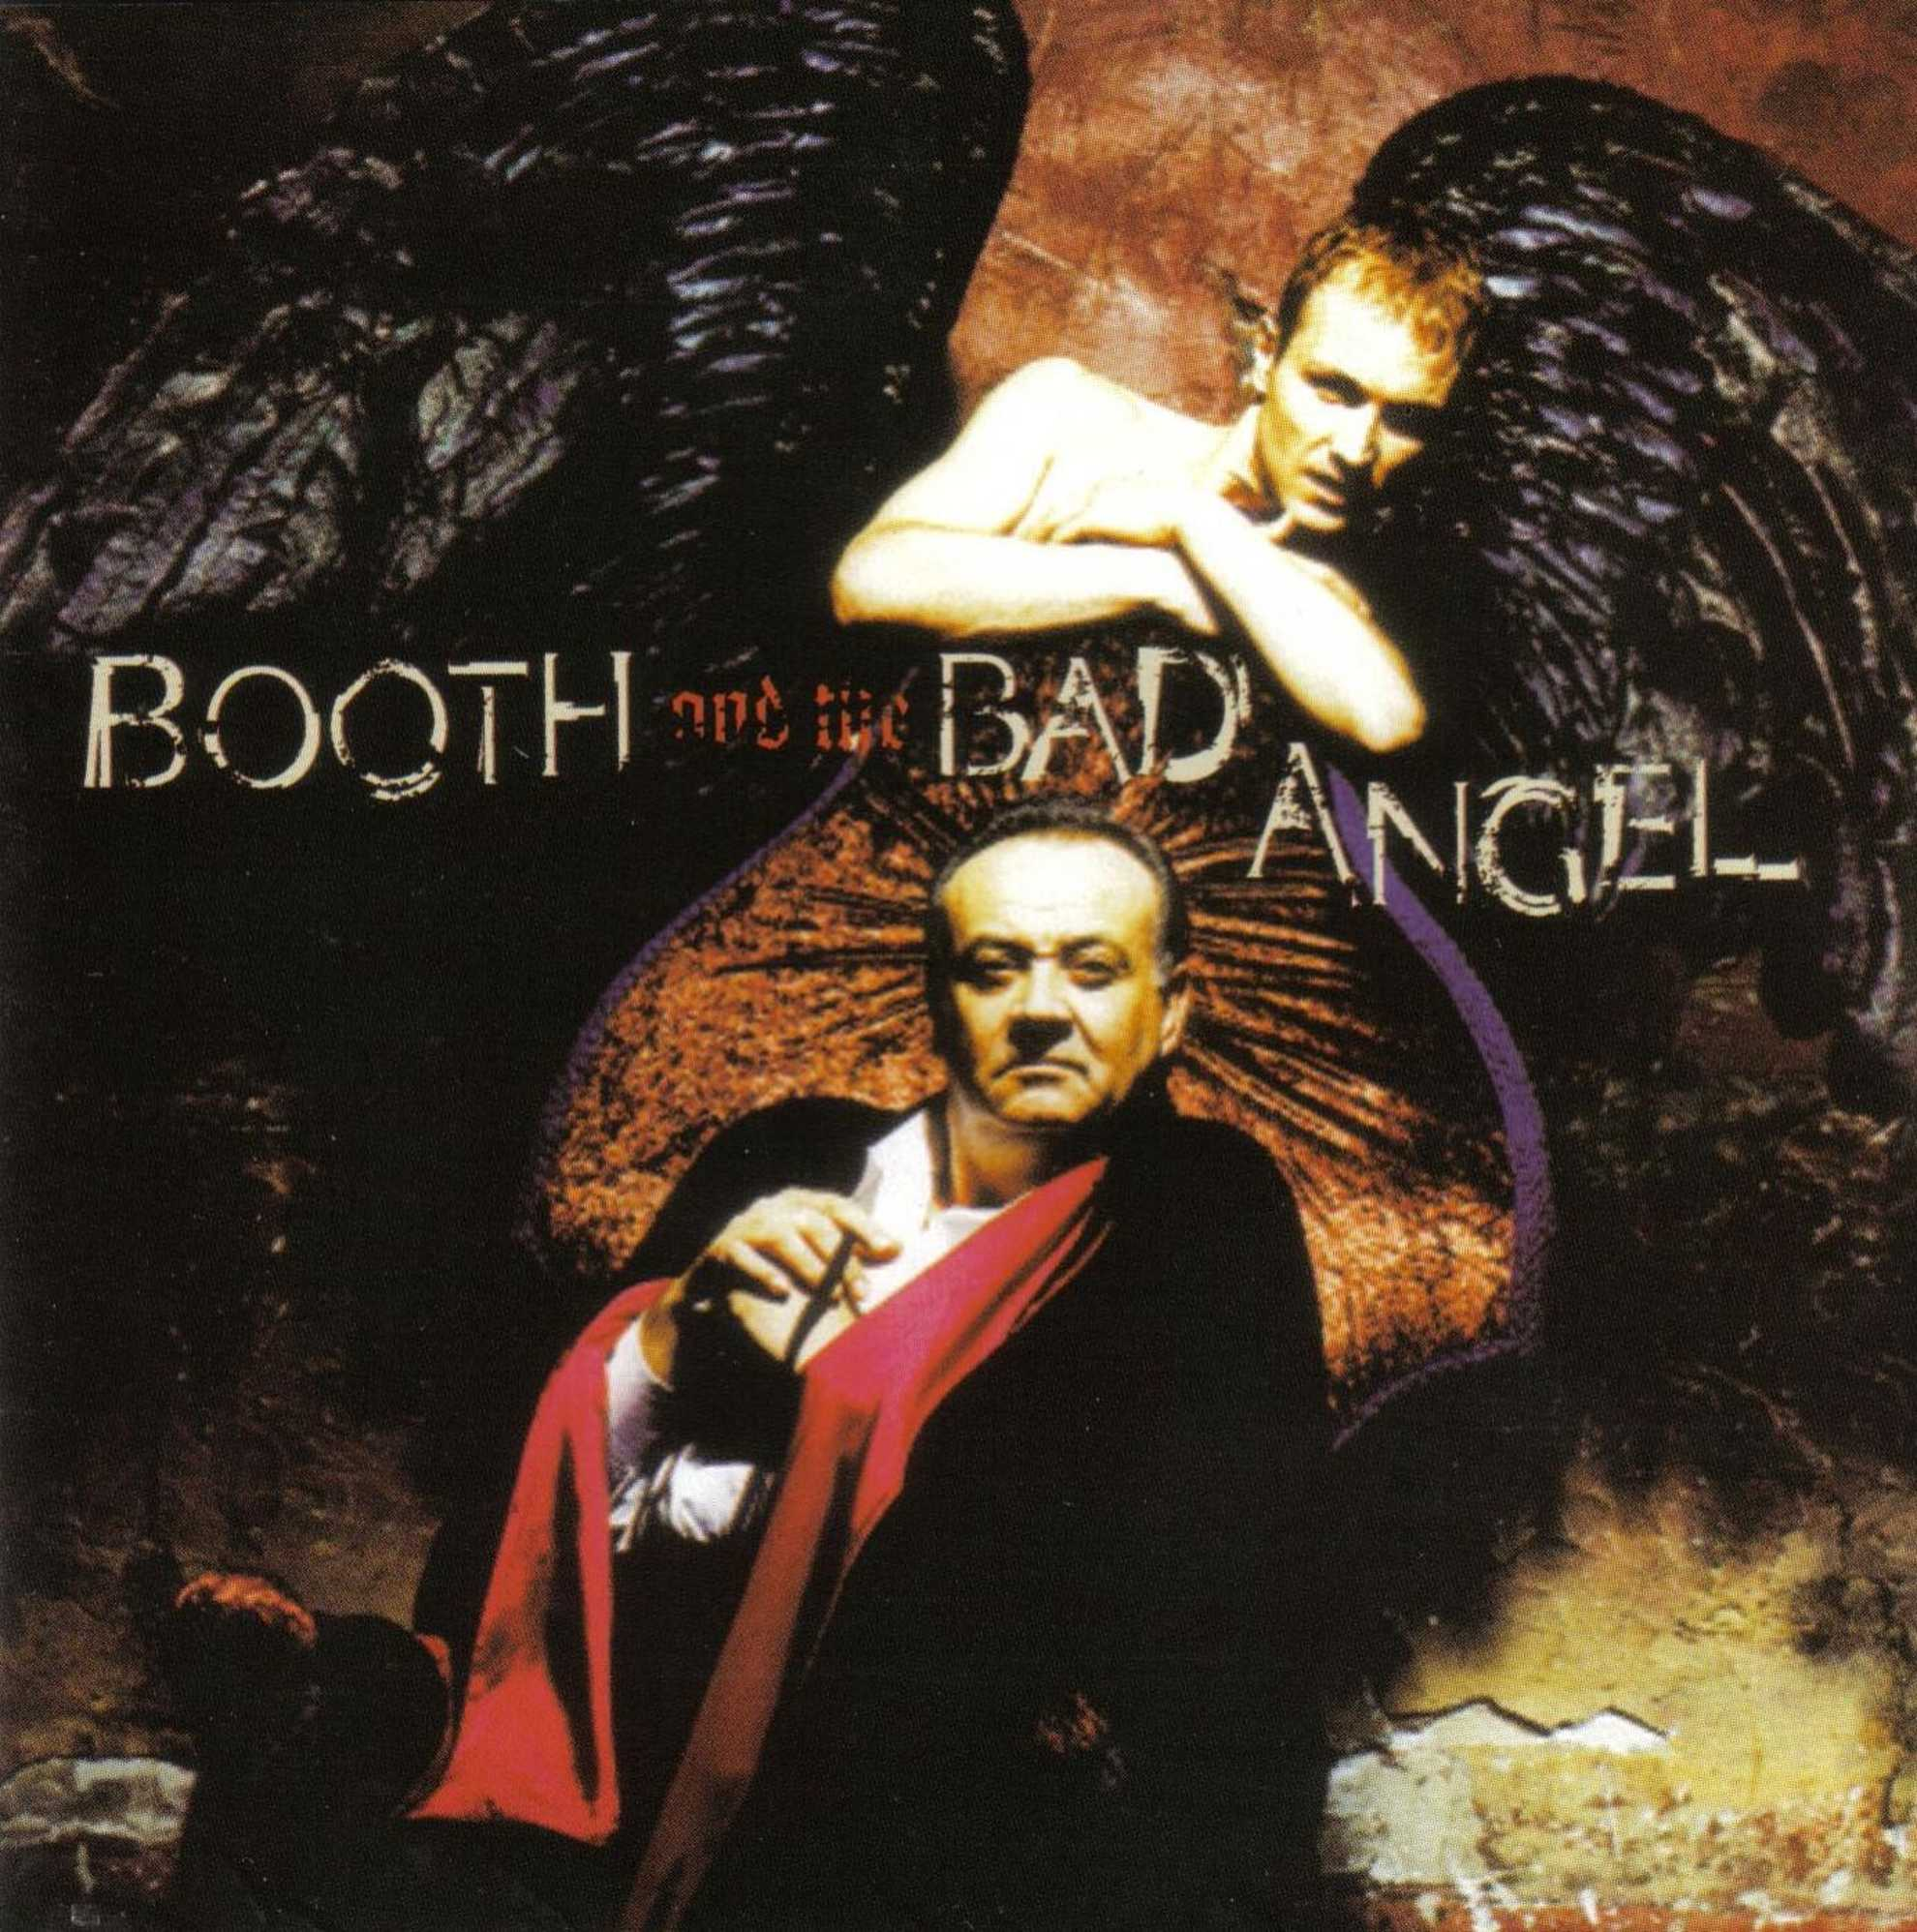 Tim Booth - The Dance of Bad Angels